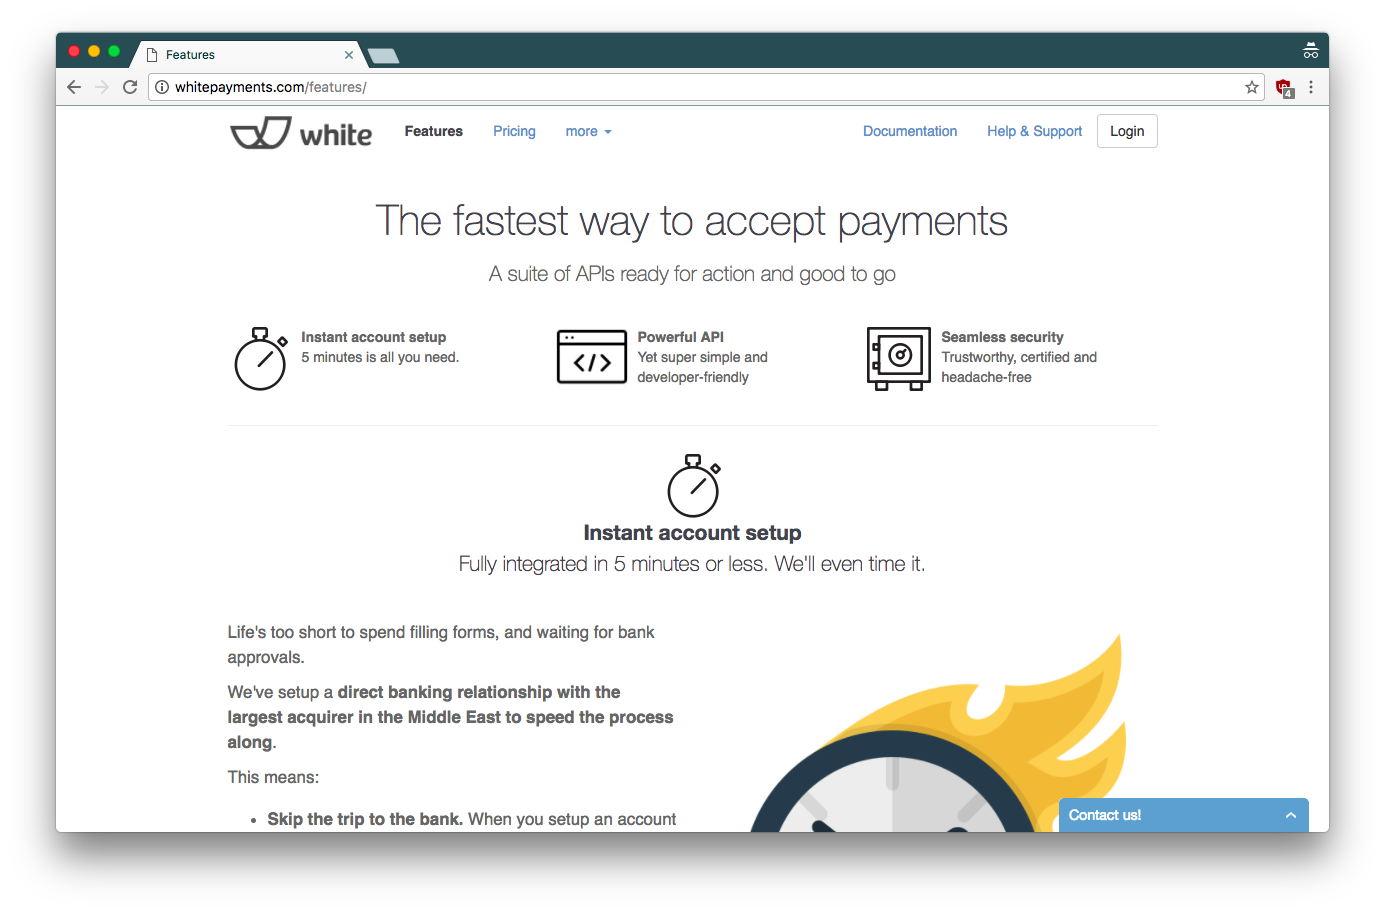 White Payments - Features